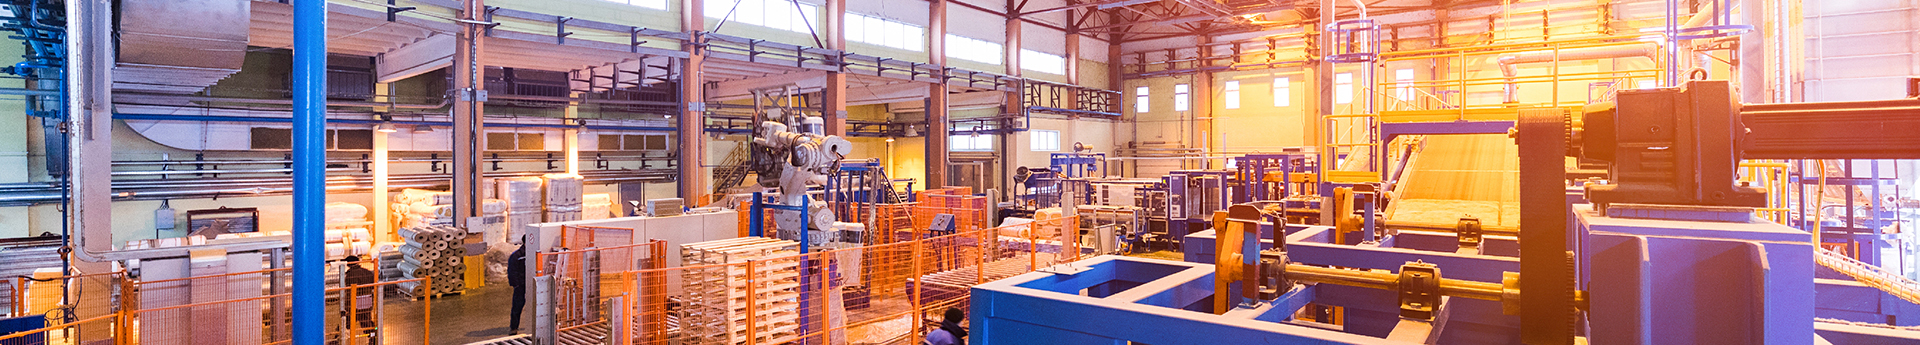 Inside-manufacturing-plant